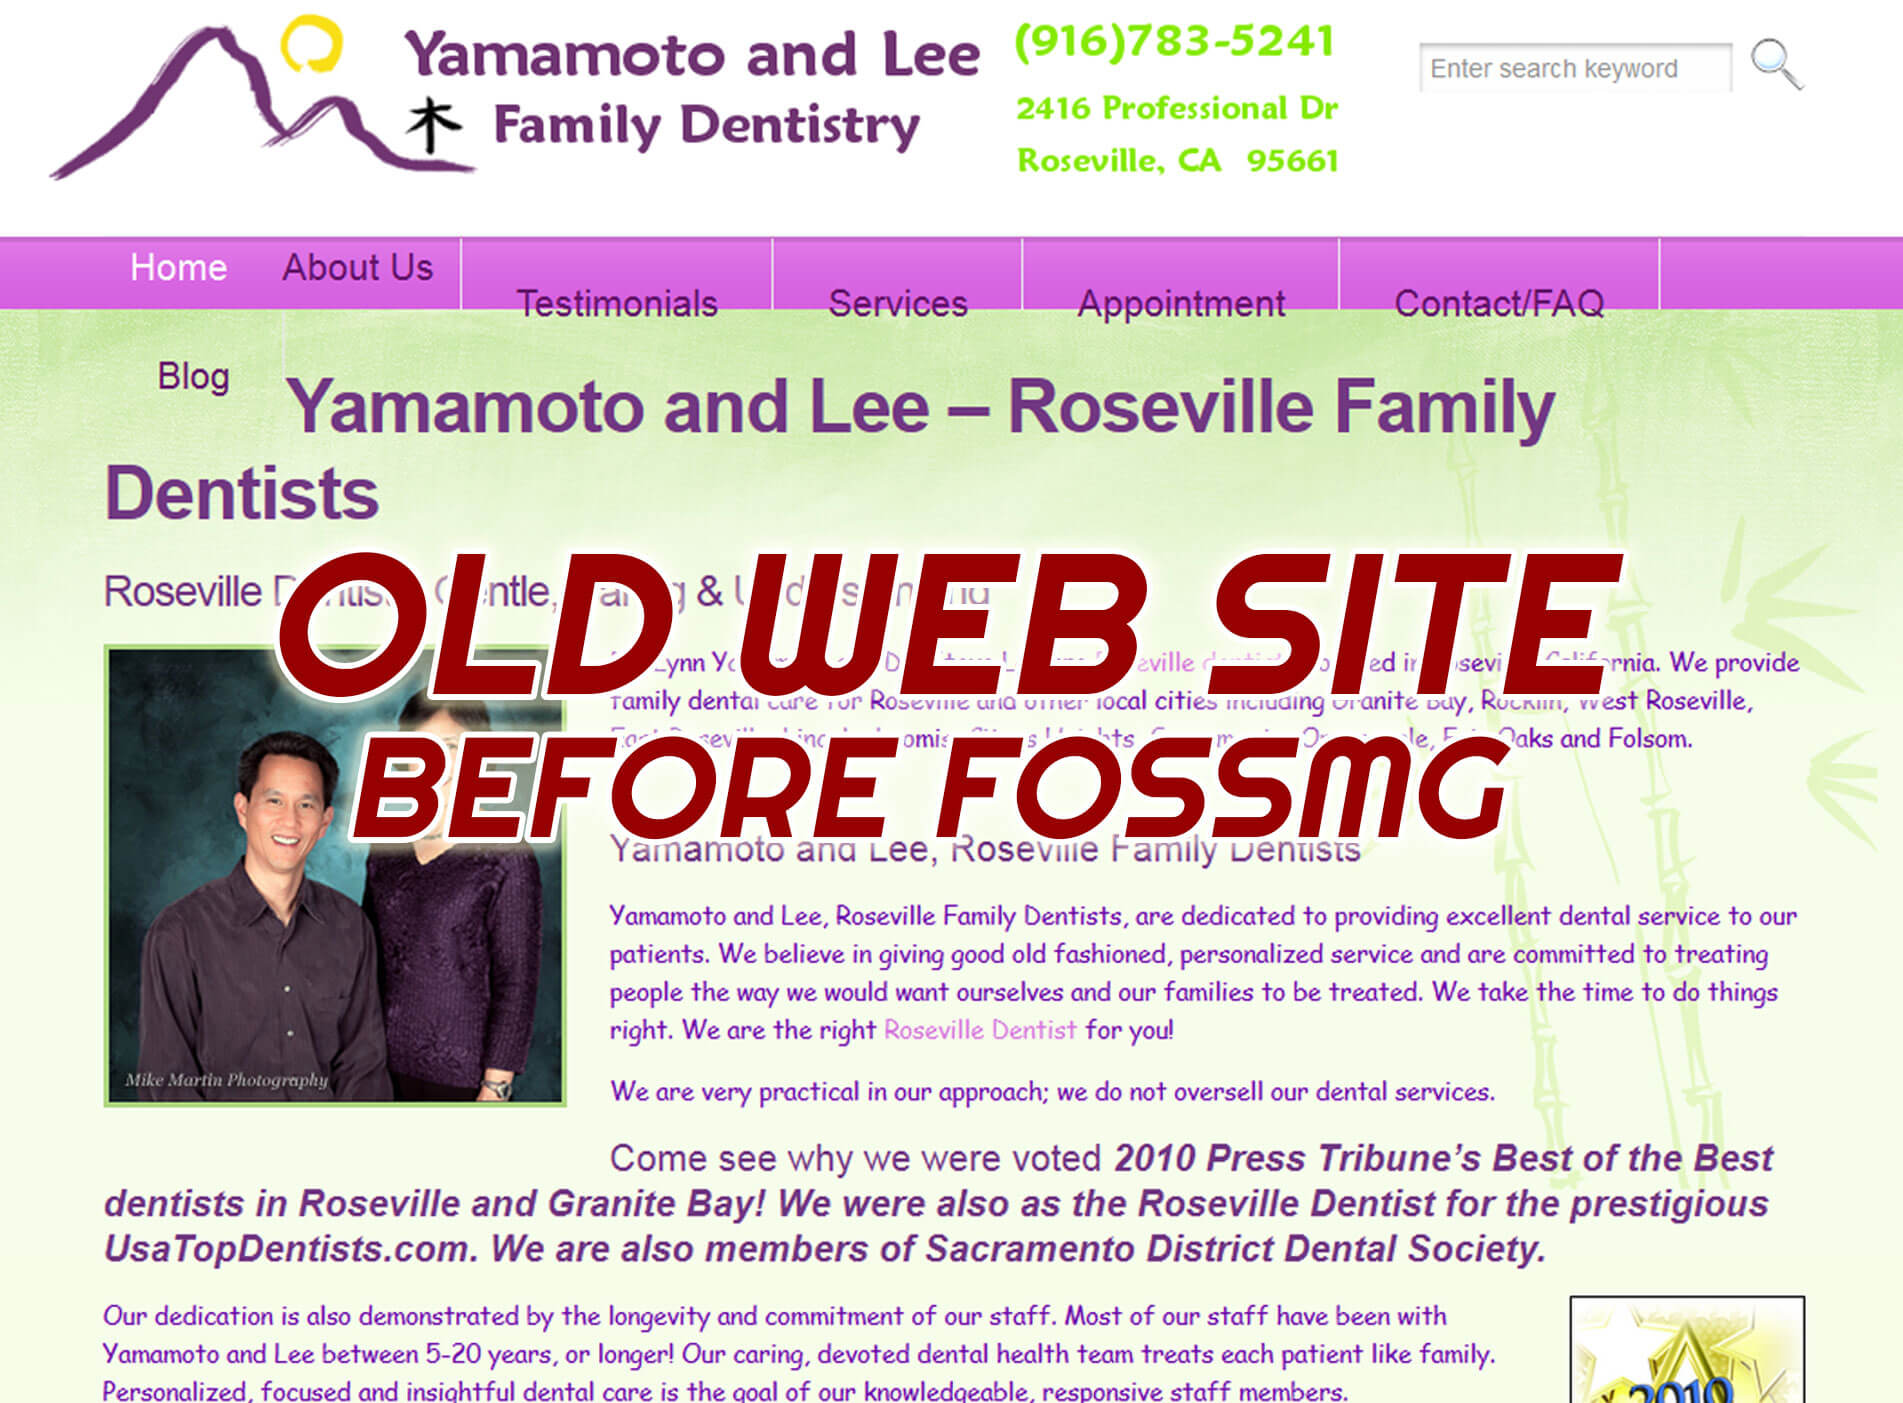 YAM-LEE-BEFORE-FOSSMG